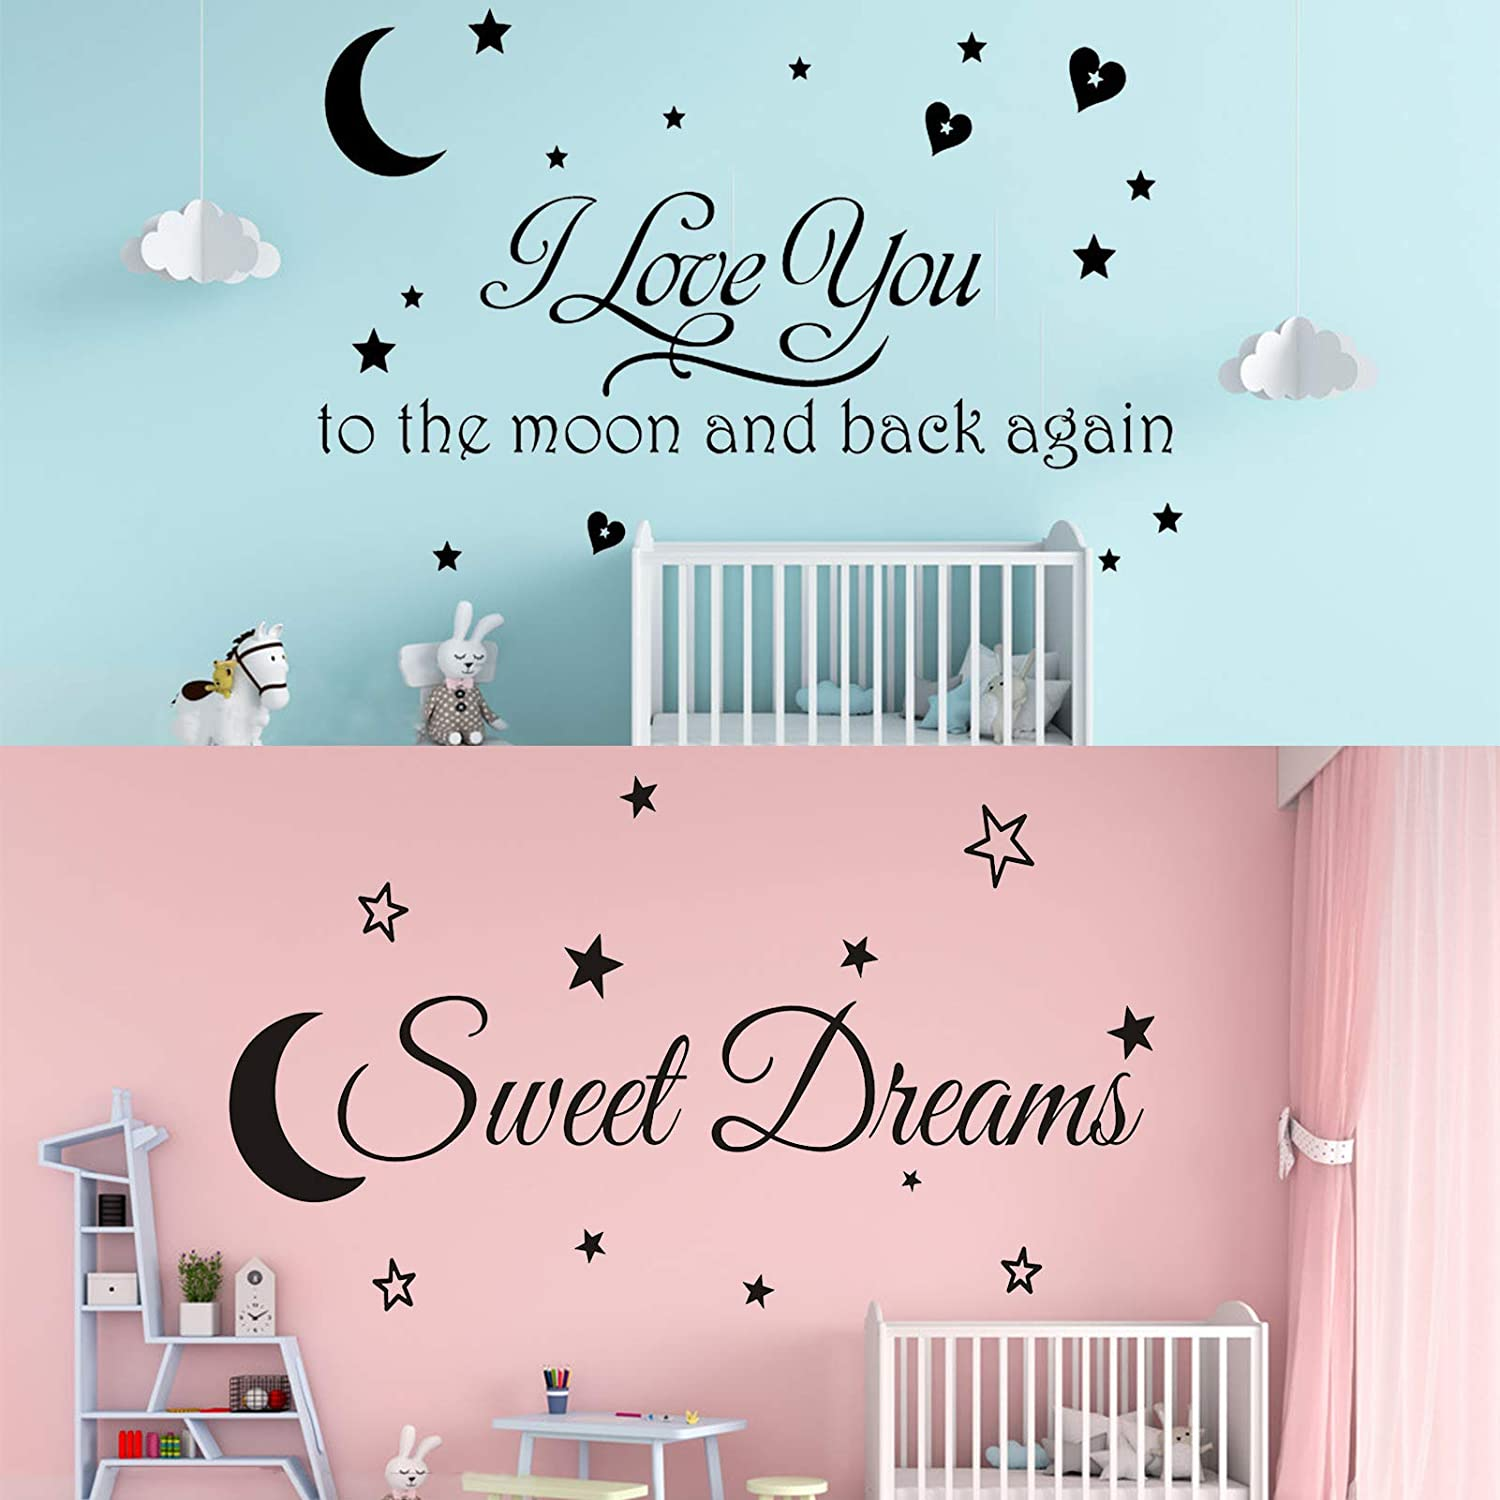 2 Packs I Love You to The Moon and Back Again with Sweet Dreams Wall Stickers Decals, Removable Wall Sign Quotes DIY Wall Art Decor Home Decorations for Kids Boys Girls Bedroom Living Room